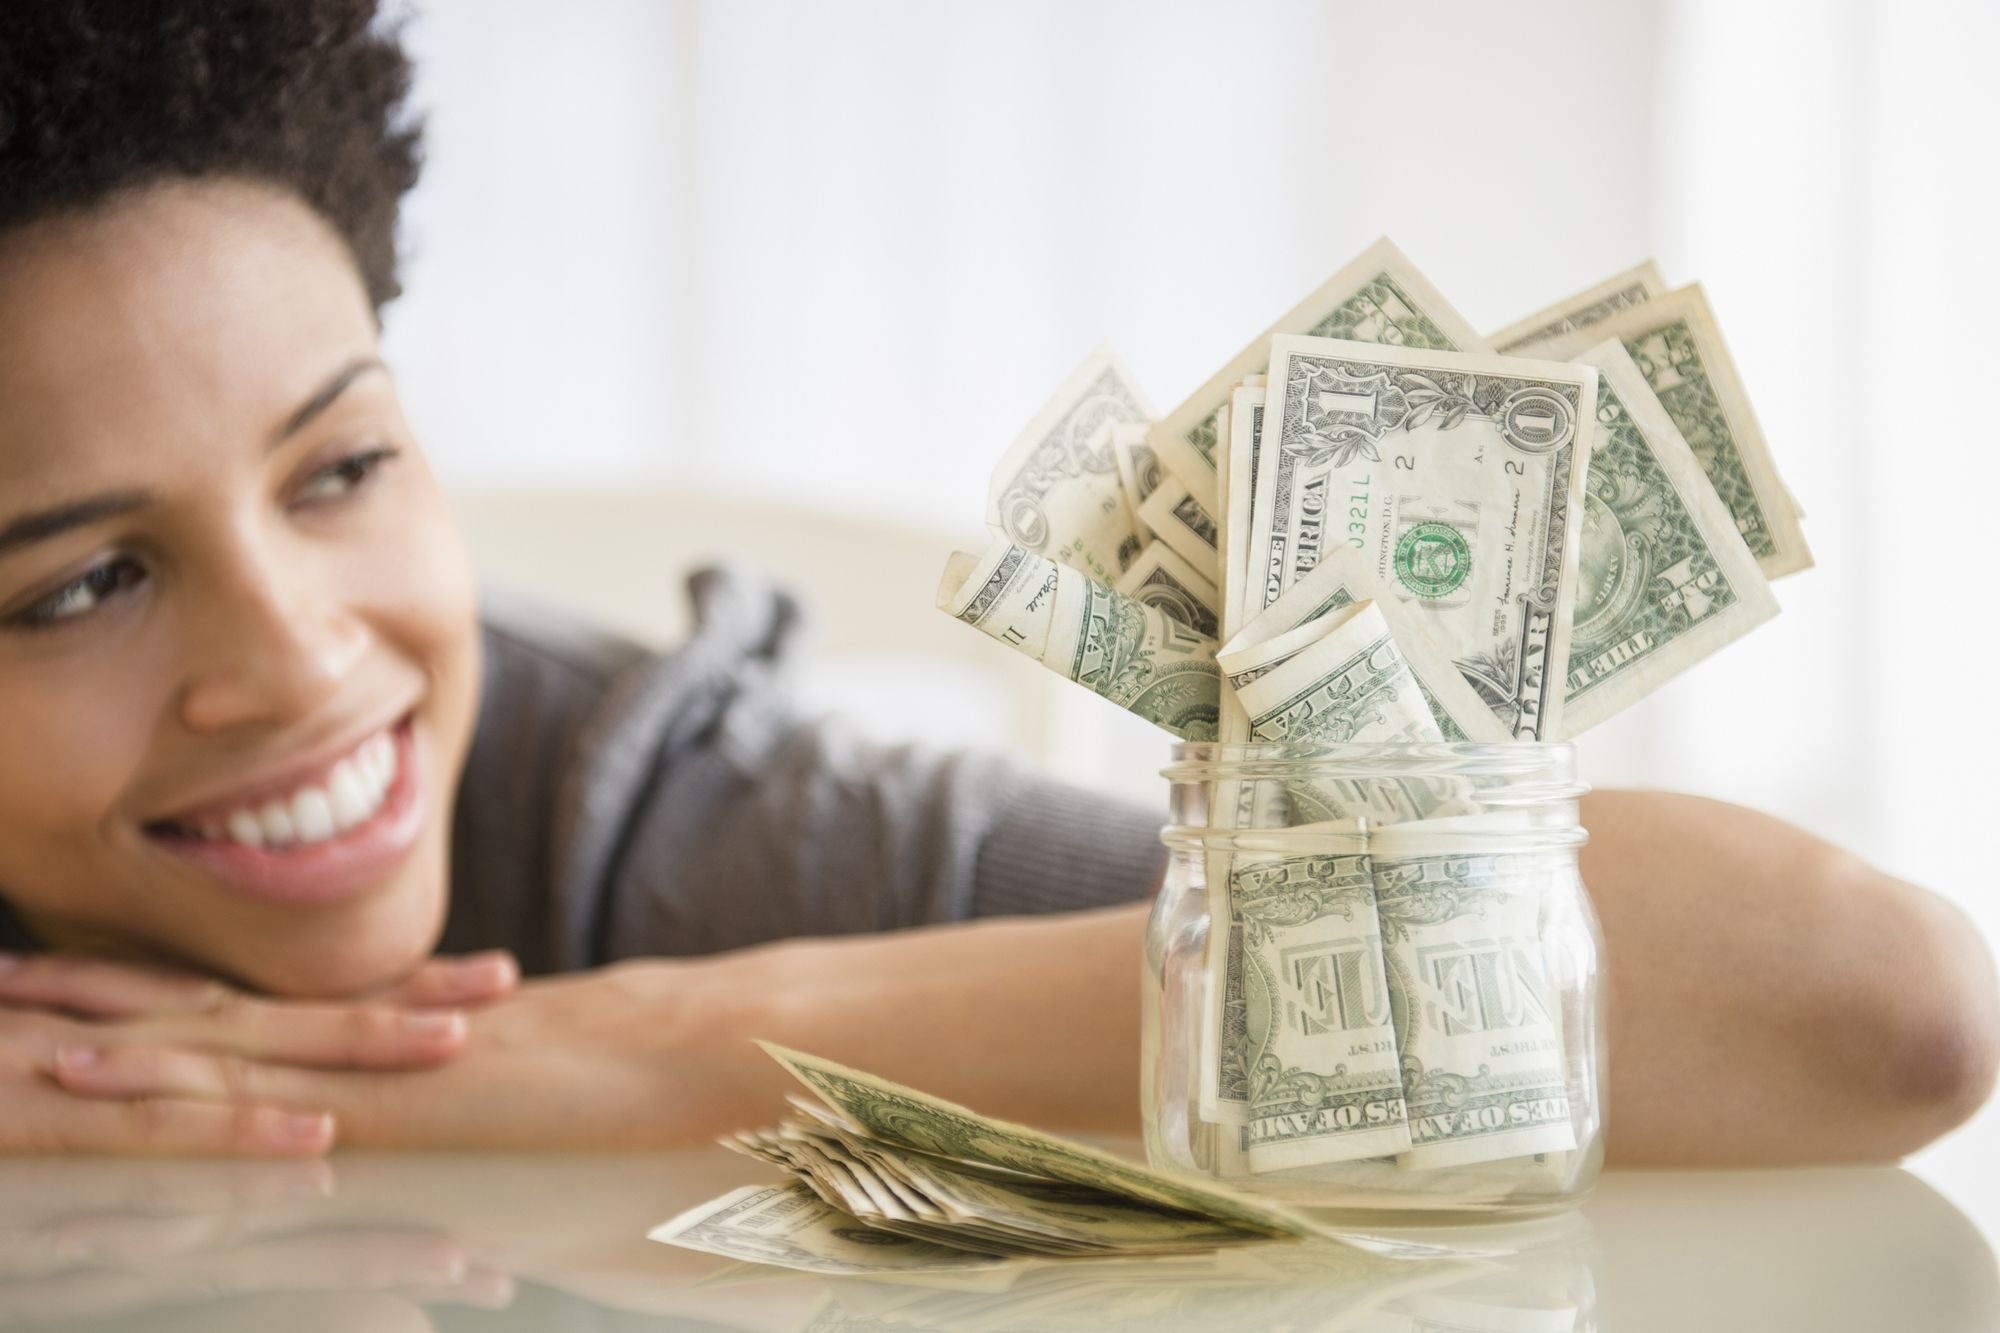 32 Proven Ways to Make Money Fast